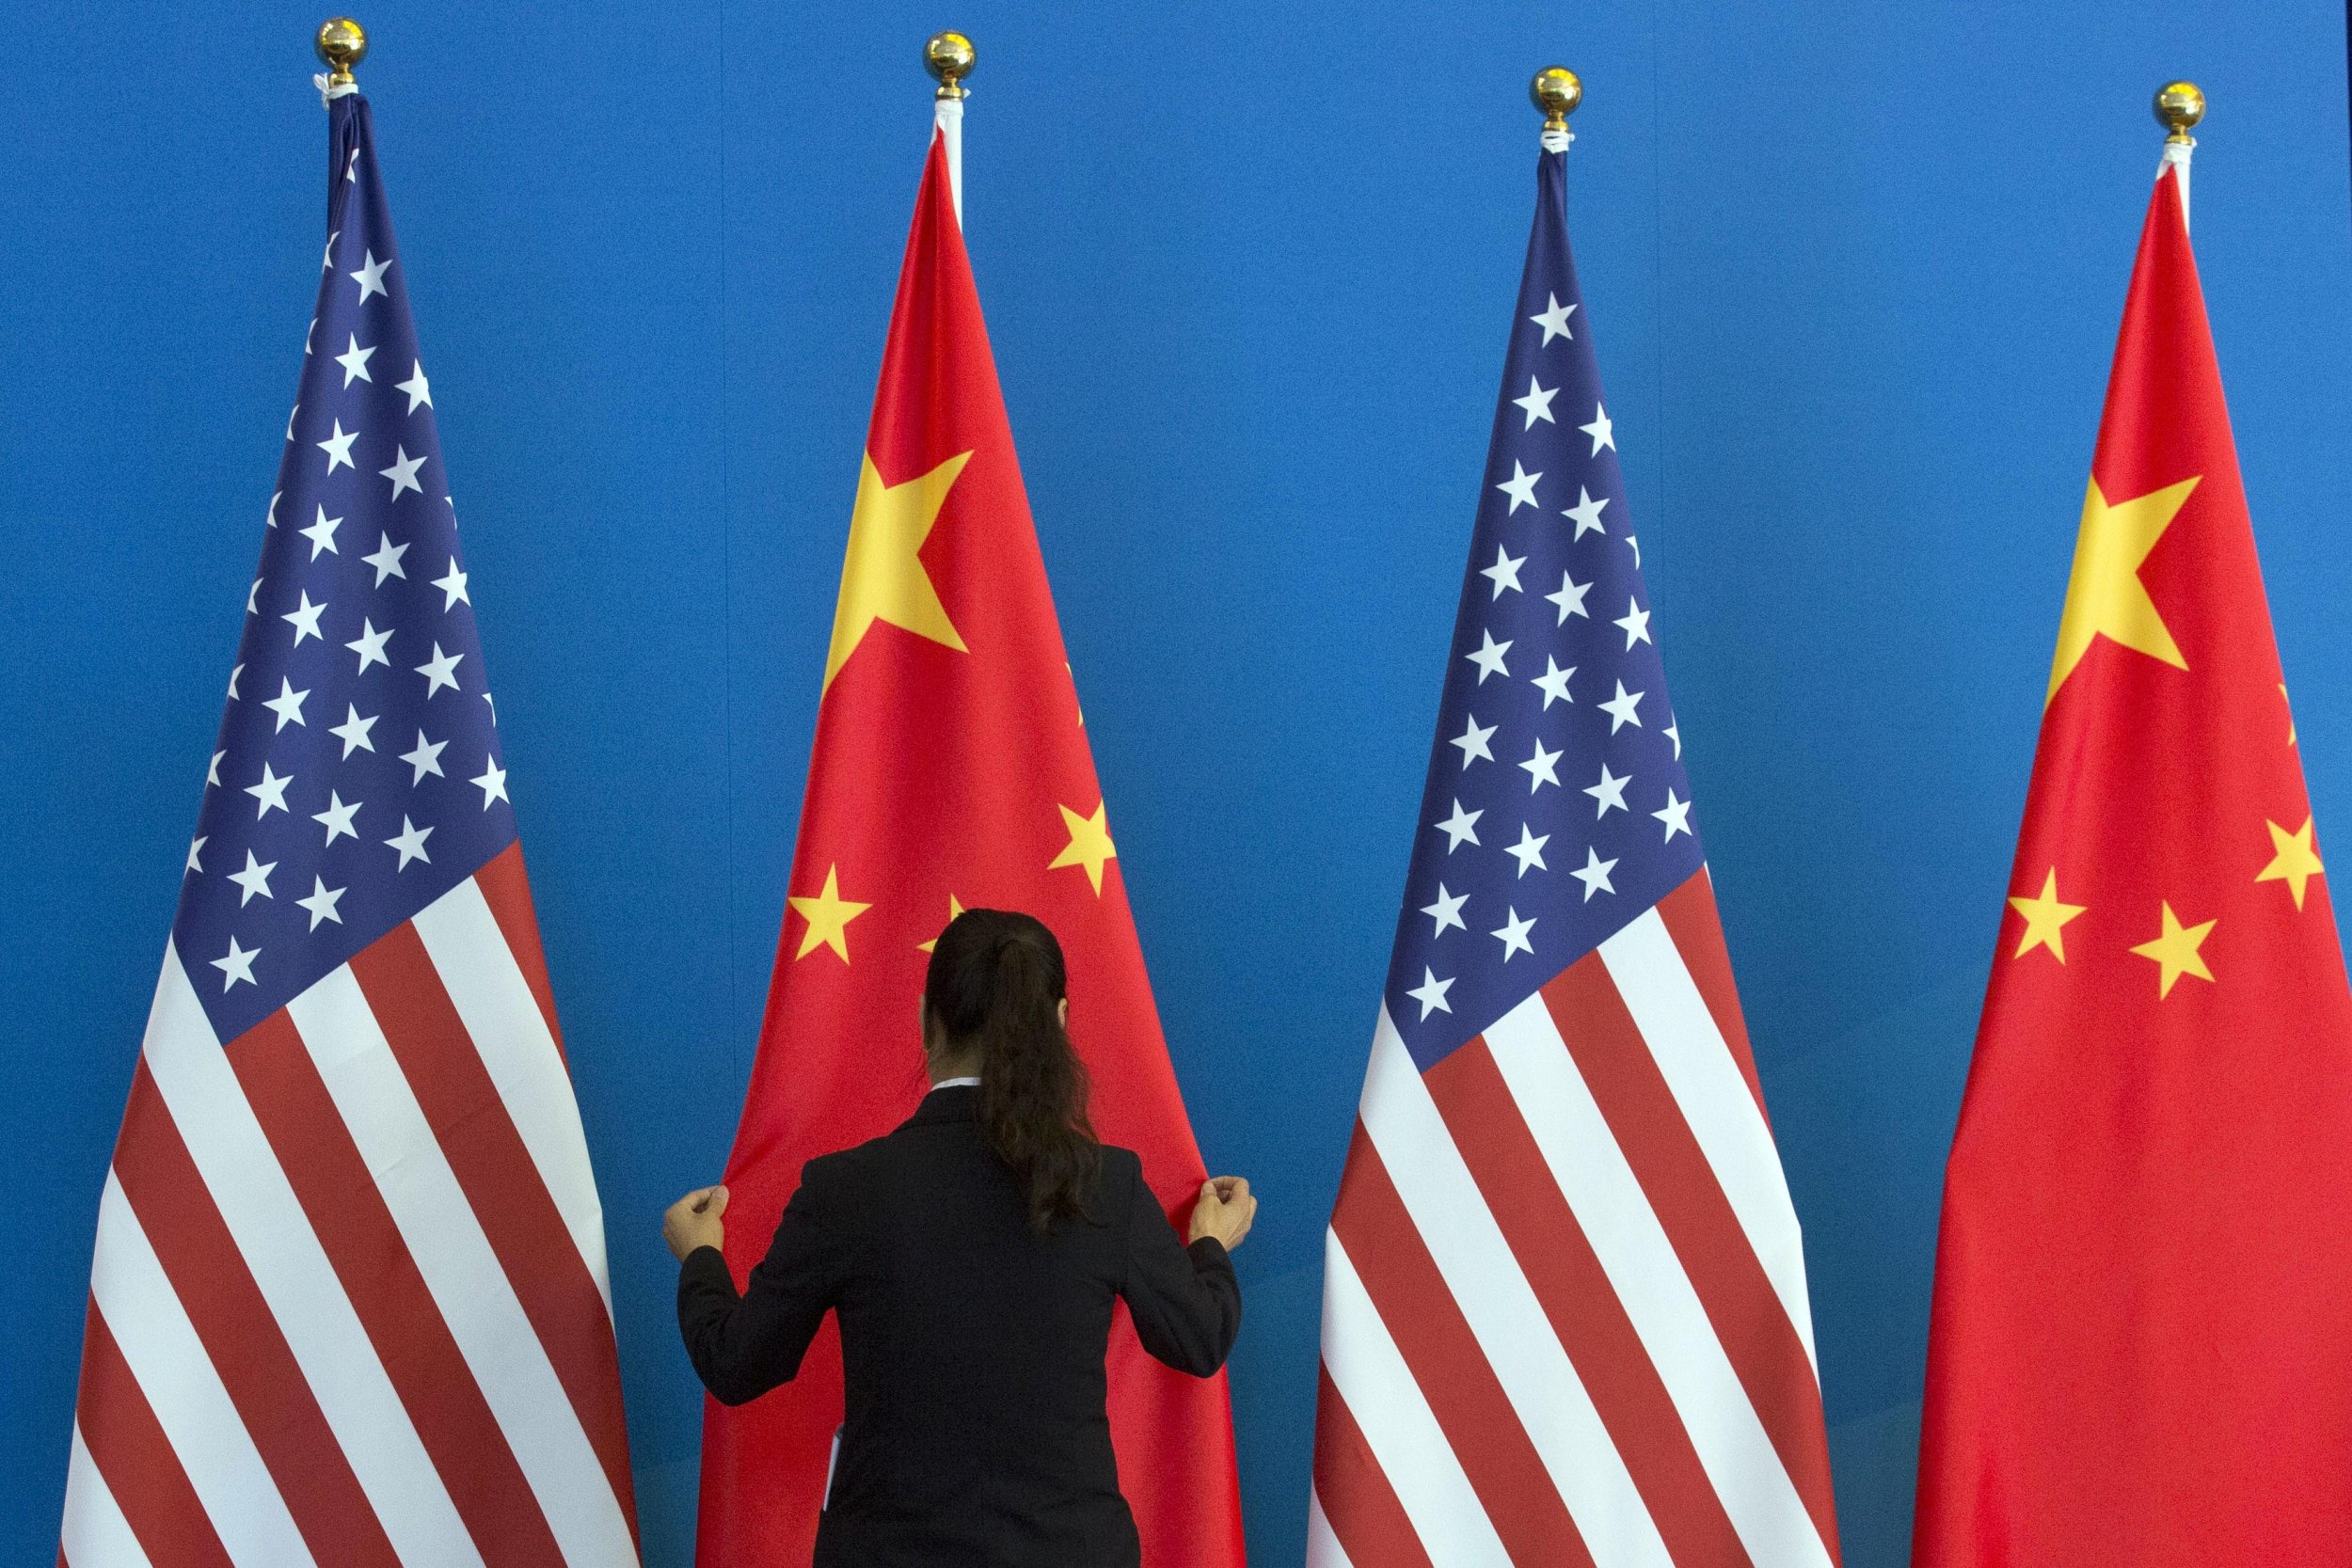 China America trade war tariffs kung fu deadly punch